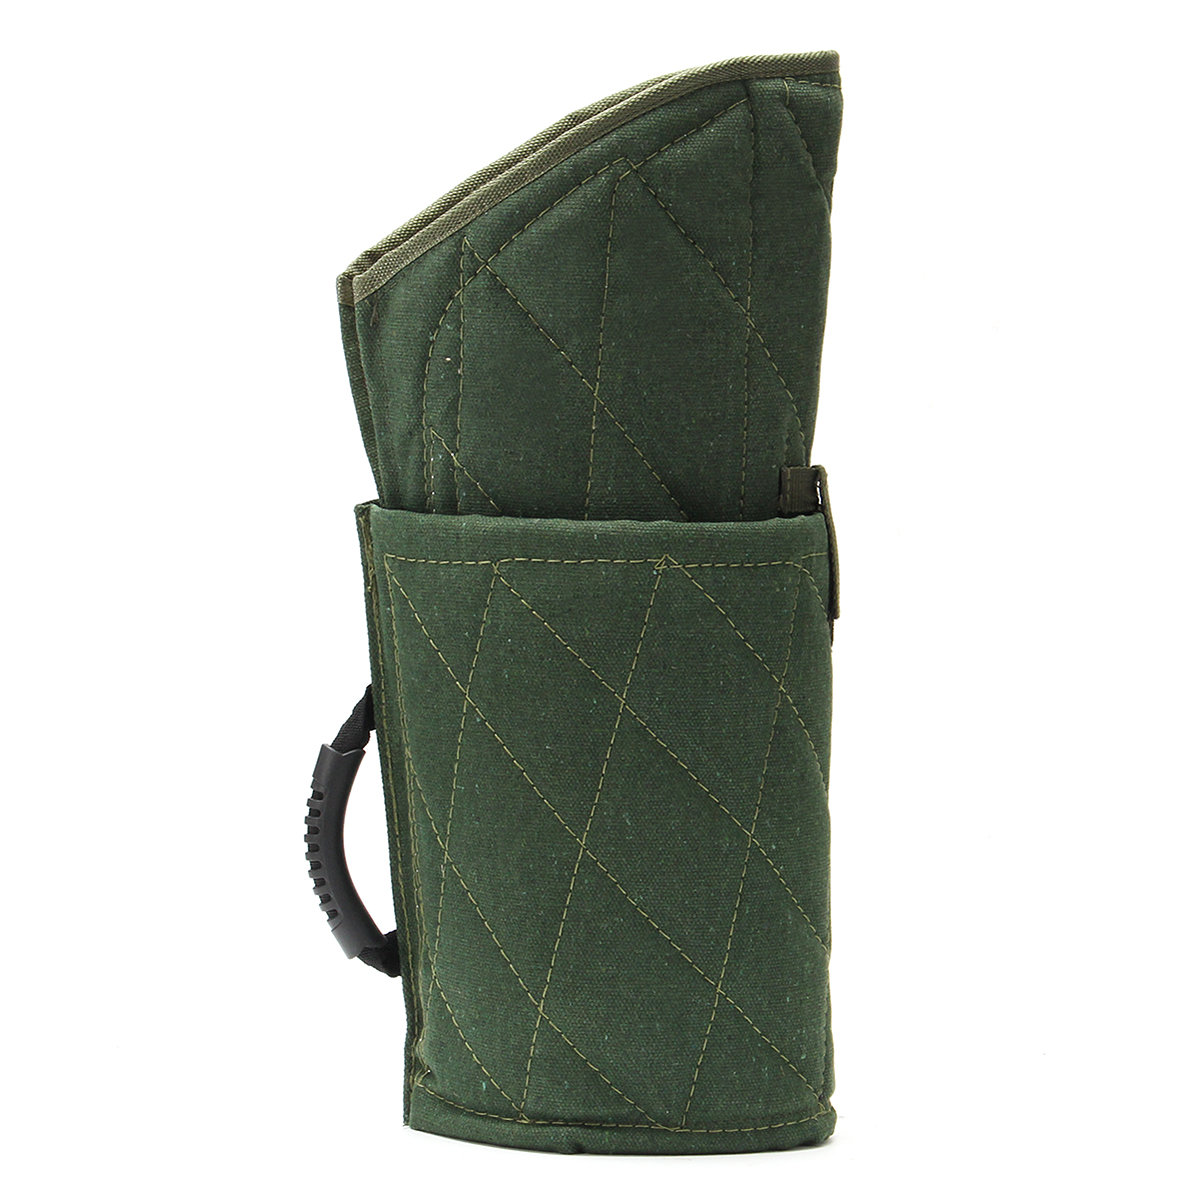 Durable Green Police Dog Training Bite Protection Arm Sleeve For Young Working Dog